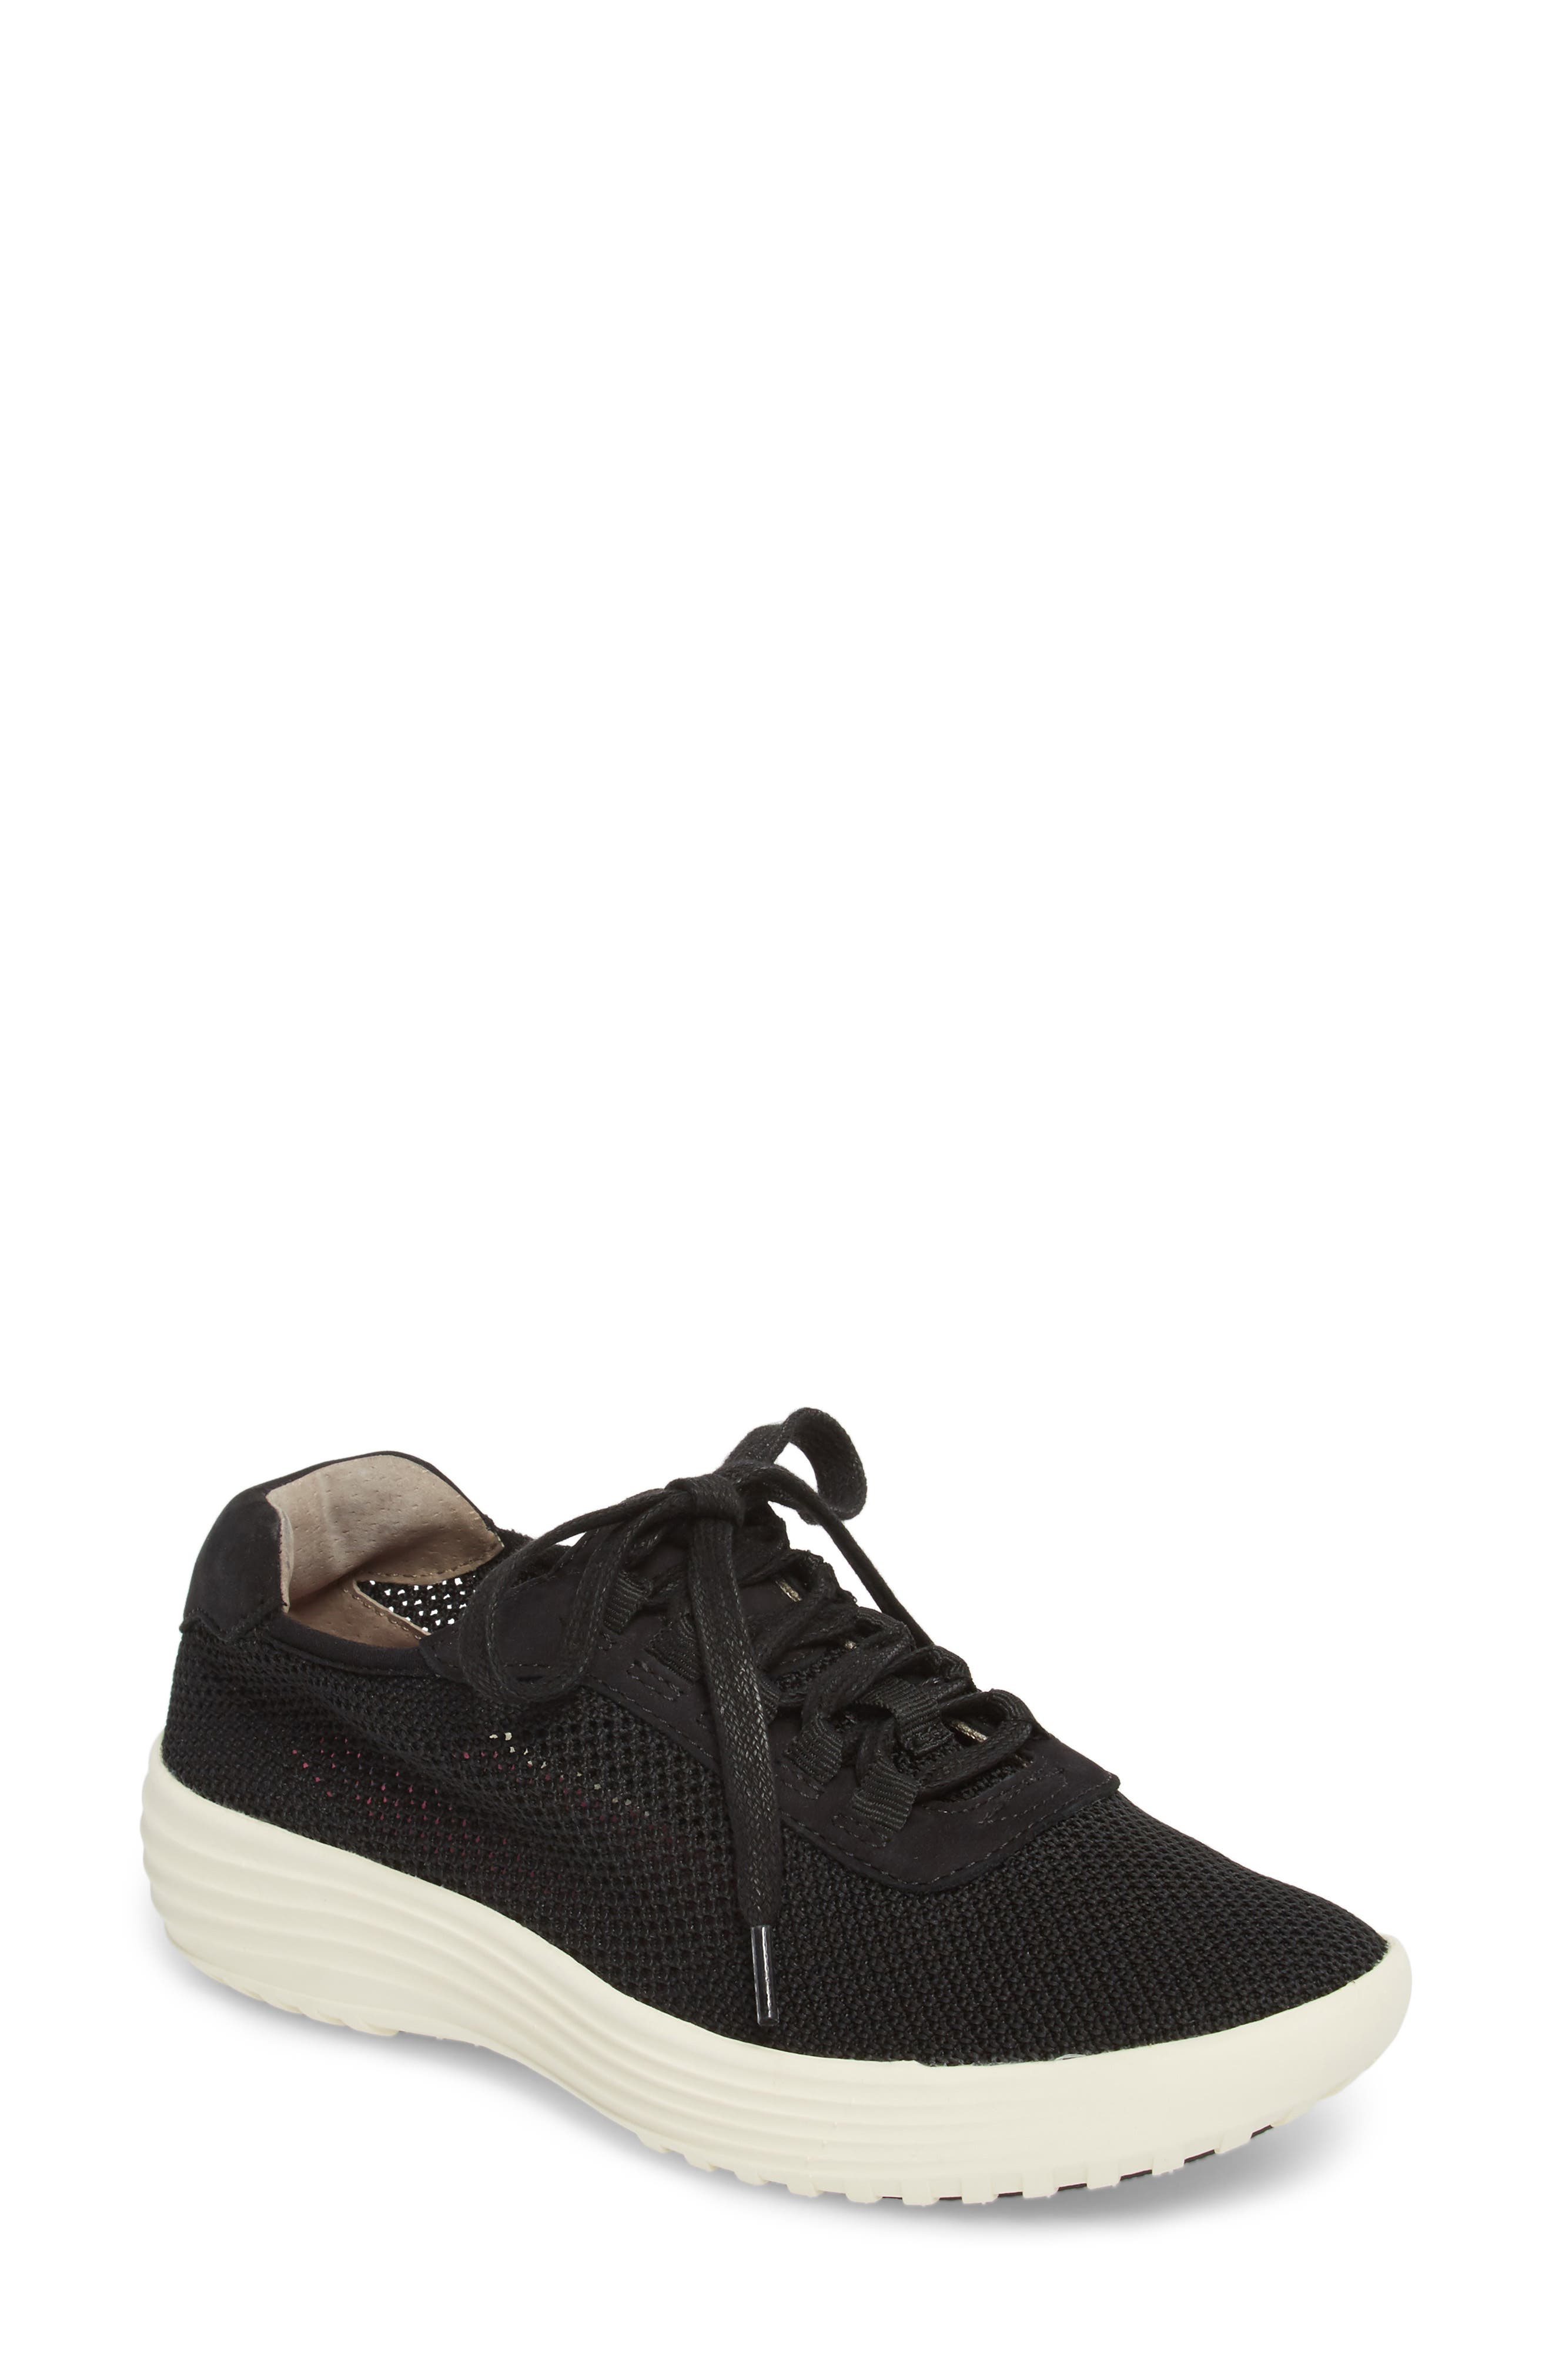 Malibu Sneaker,                         Main,                         color, BLACK KNIT FABRIC